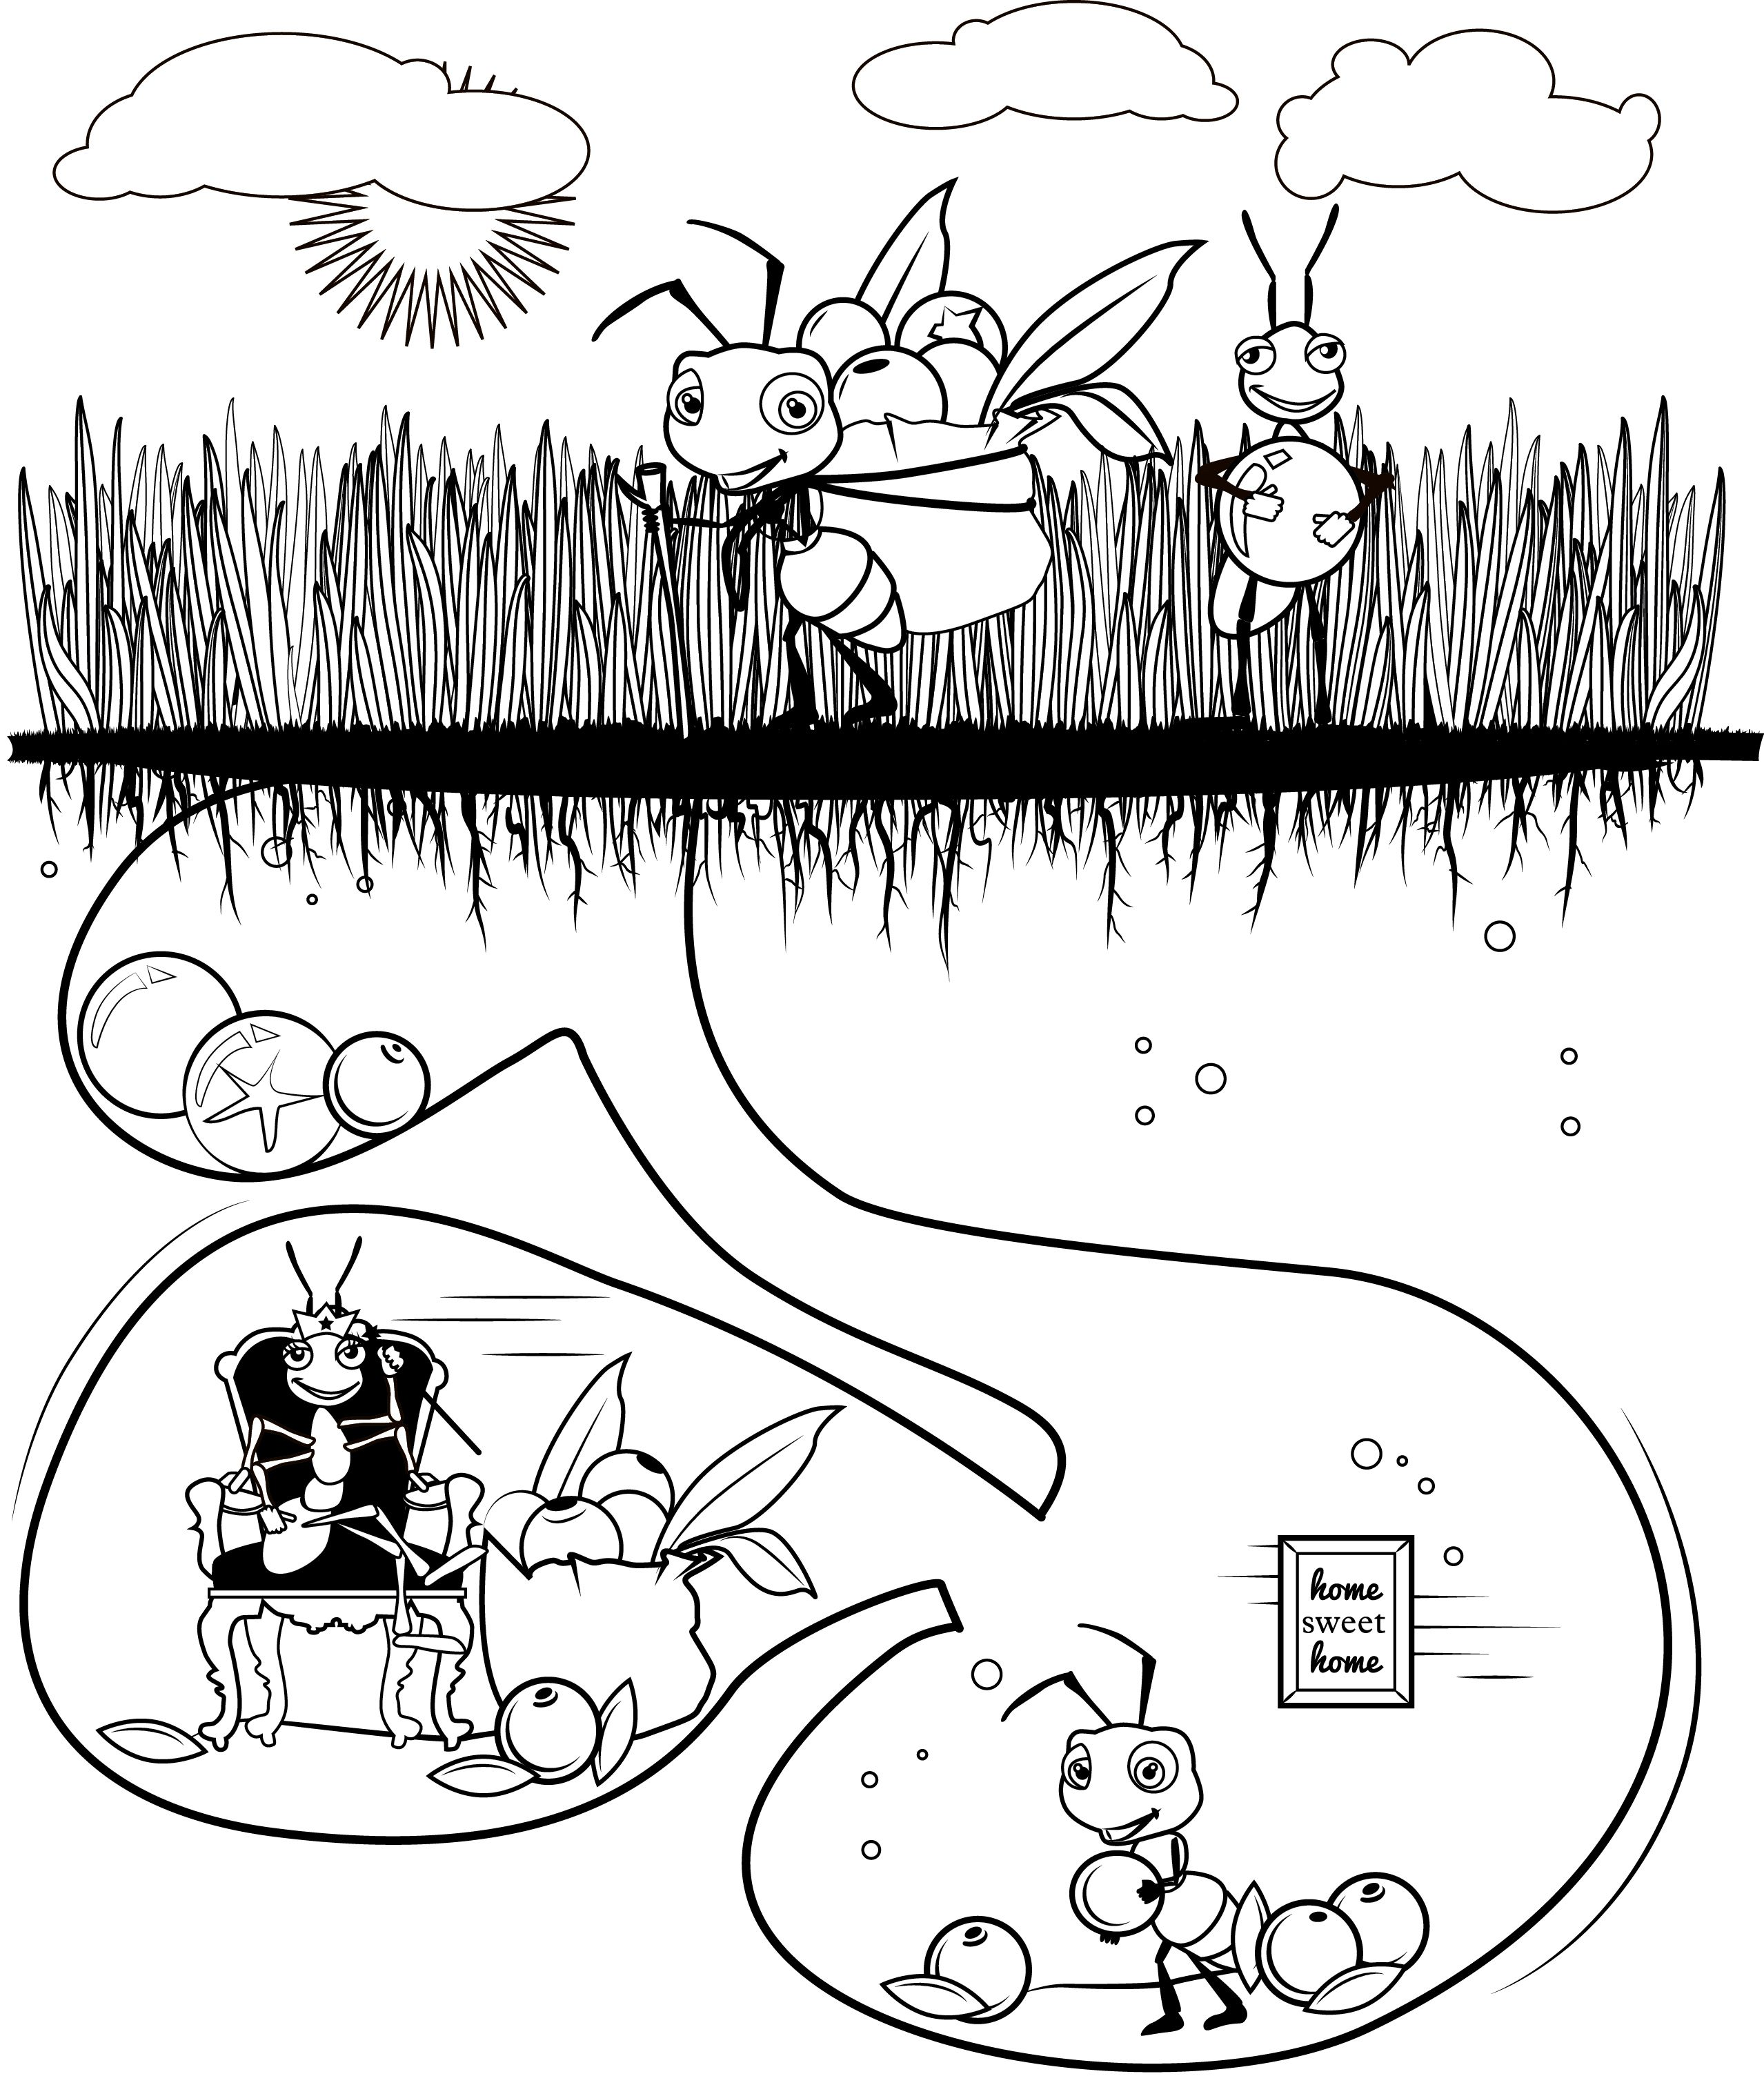 Ant Coloring Sheet